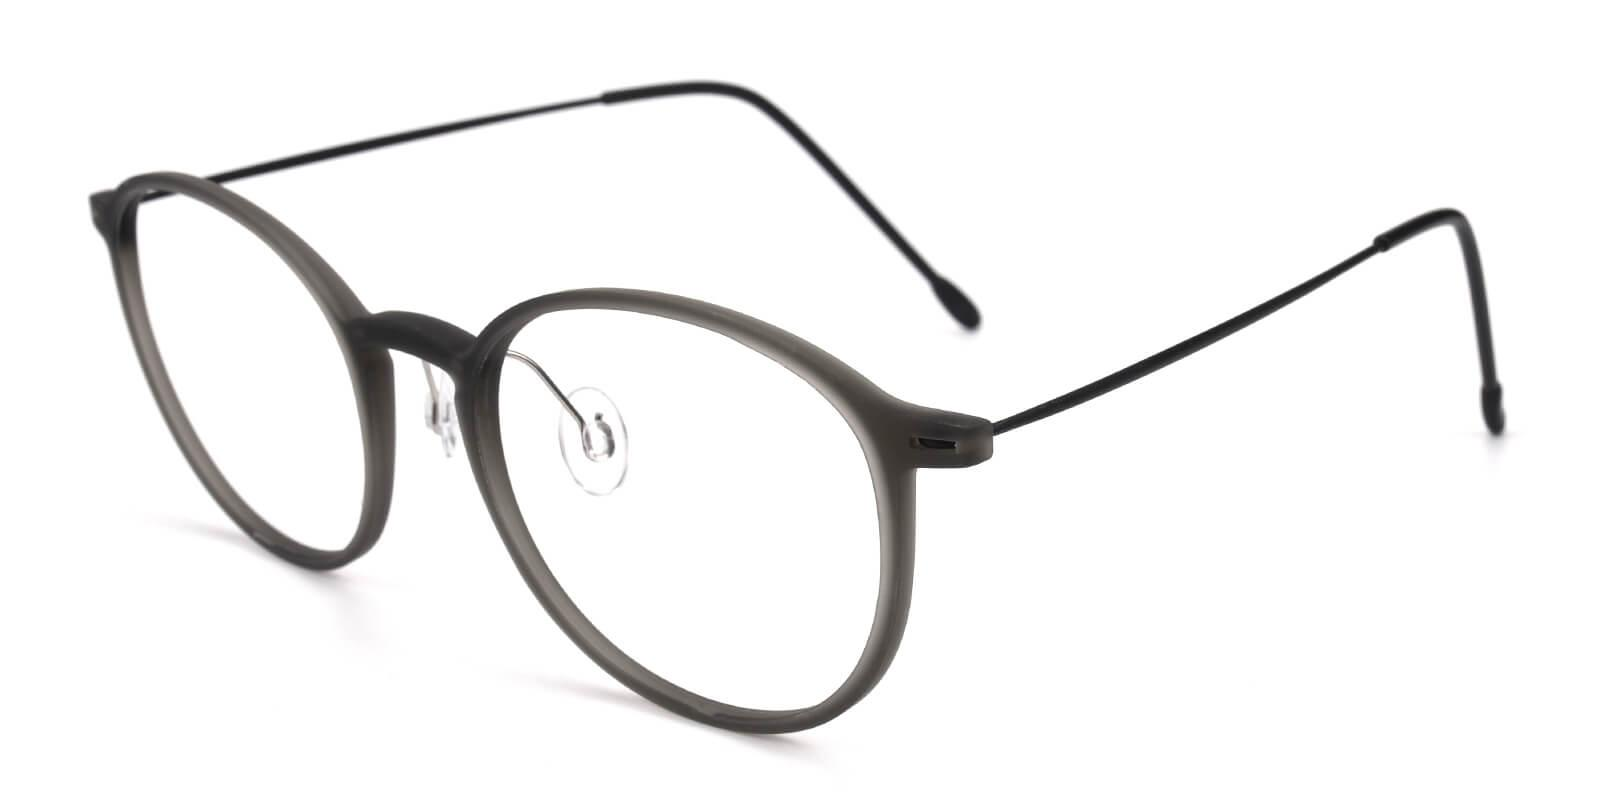 Yunda-Gray-Round-Combination-Eyeglasses-additional1